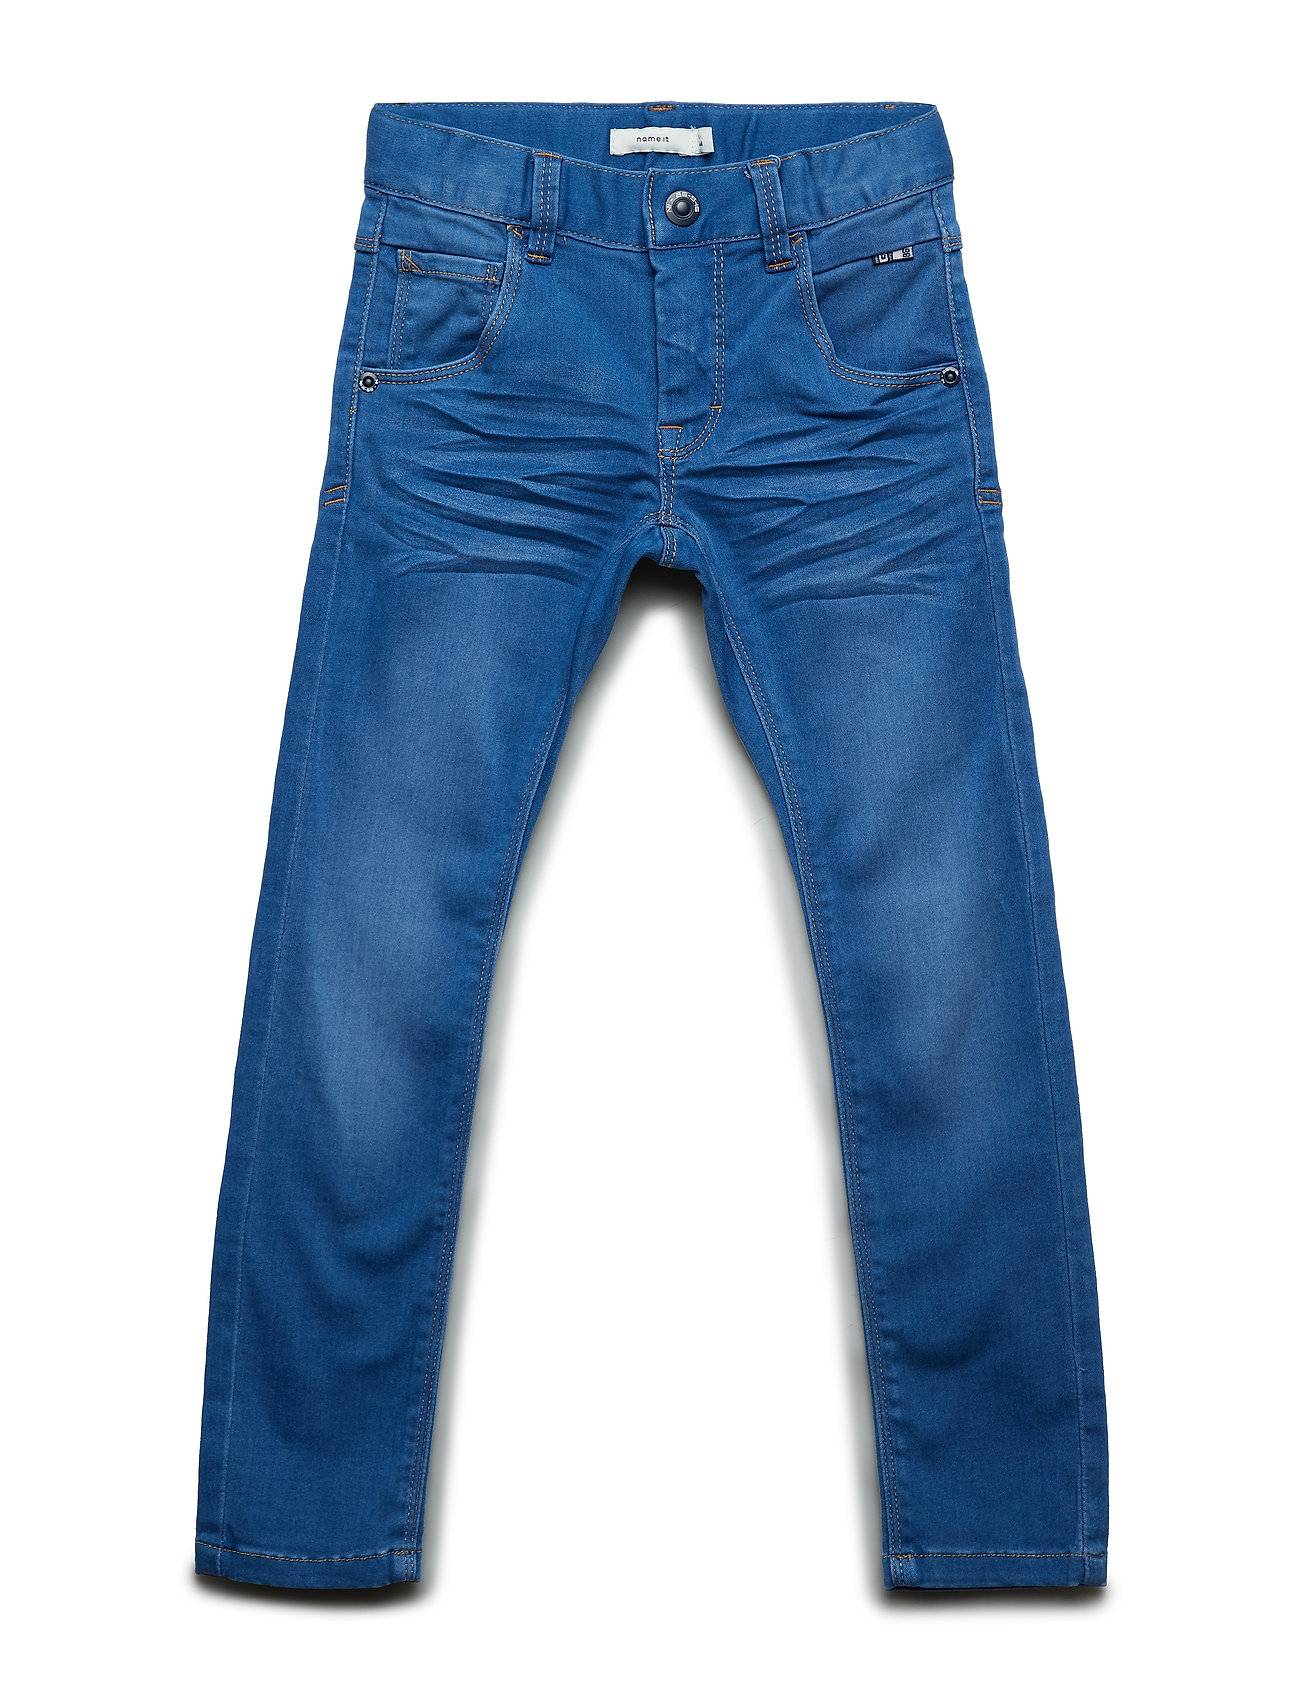 Image of Nitclas Xsl/Xsl Dnm Pant Nmt Noos Jeans Blå NAME IT (2909491791)